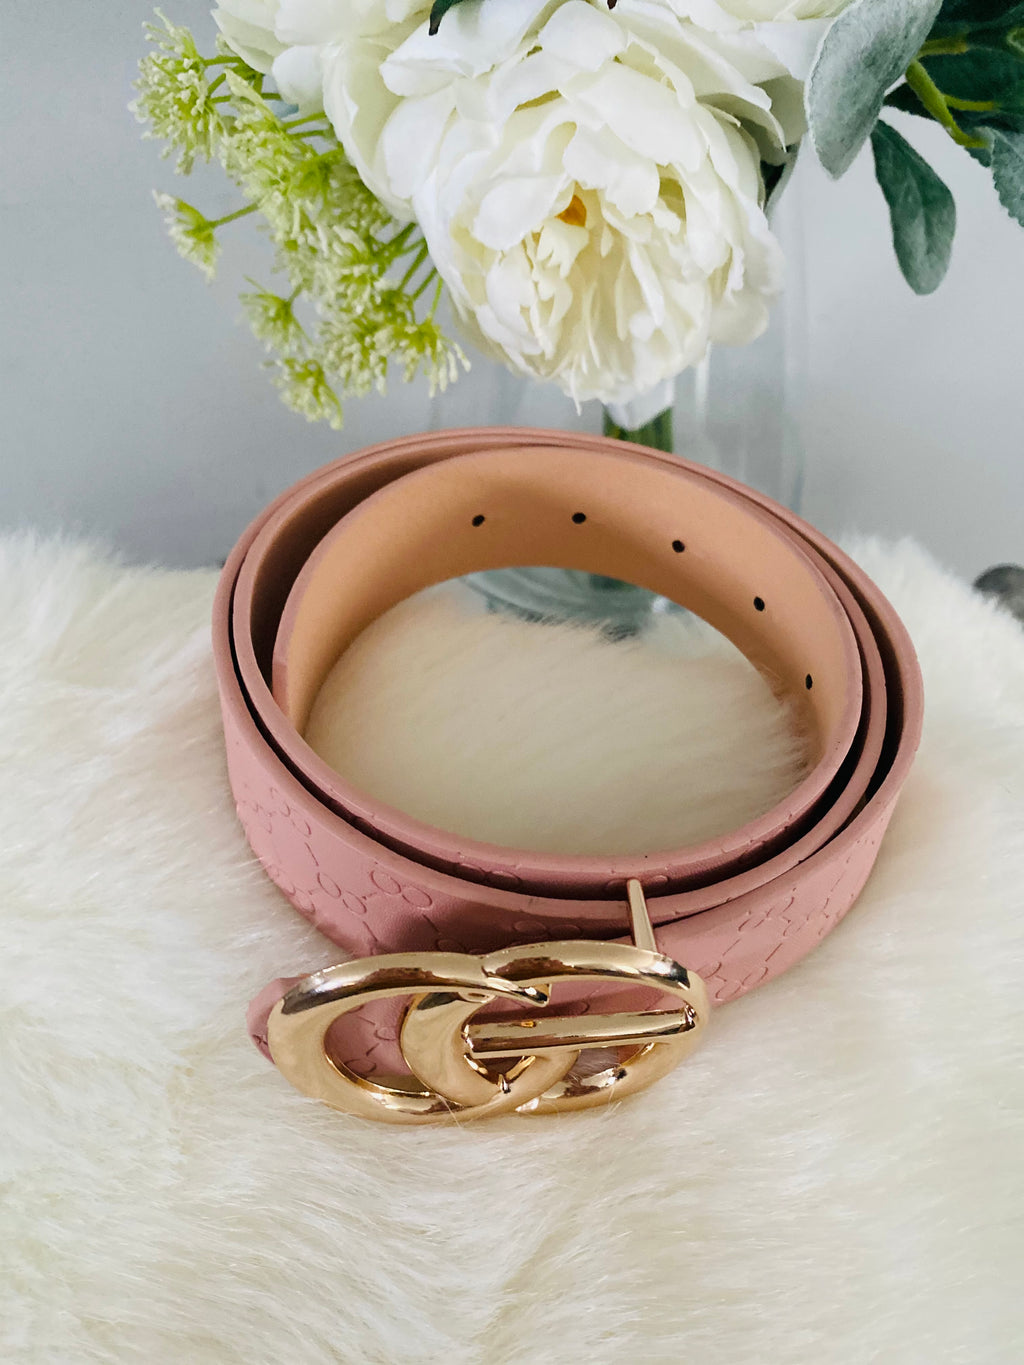 Classy Blush Belt - Designer Look - The Darling Style